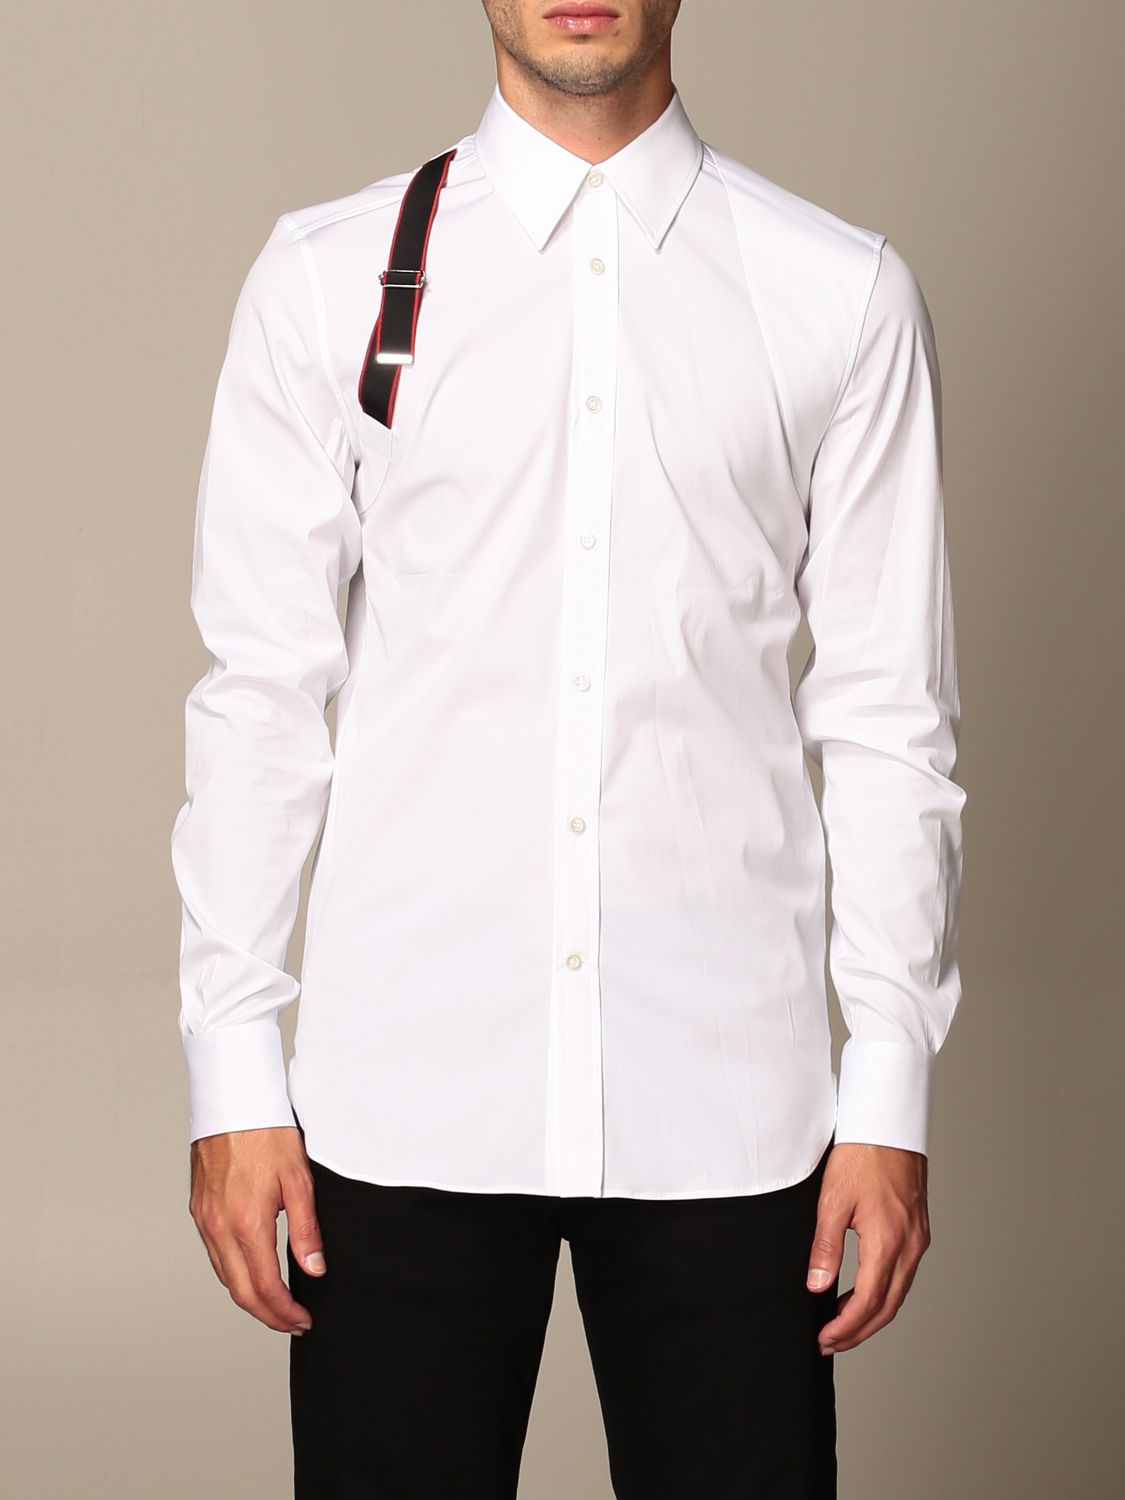 Shirt Alexander Mcqueen: Alexander McQueen shirt with buckle white 1